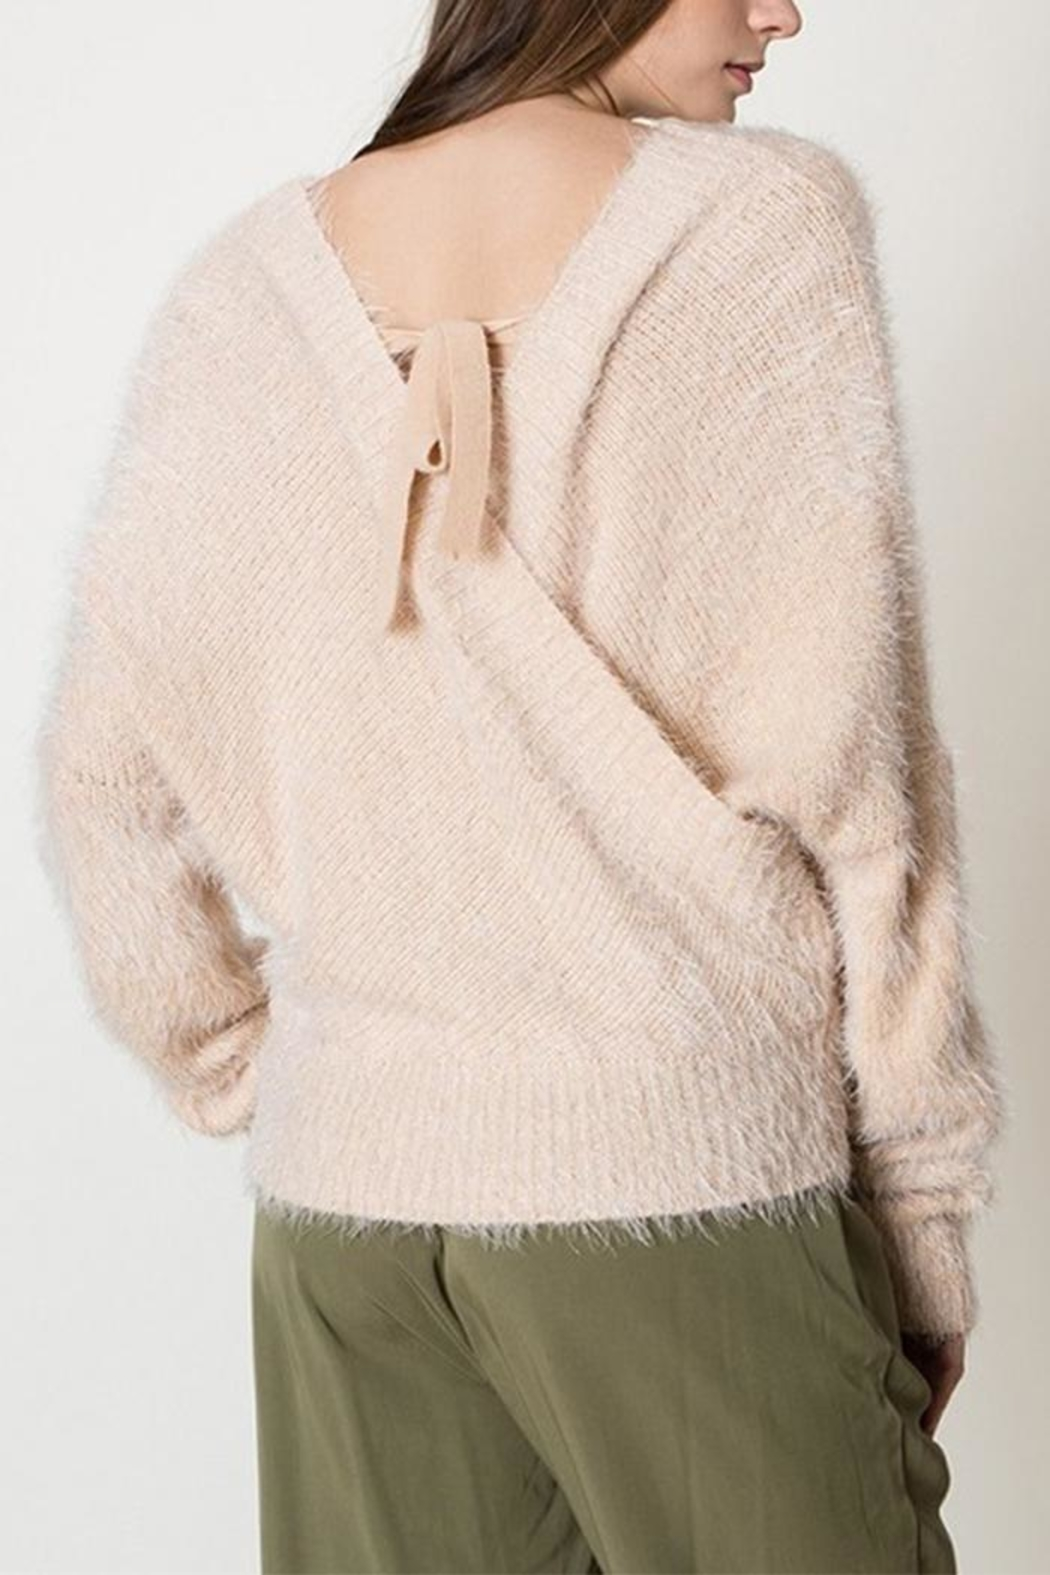 HYFVE Fuzzy Crossover Sweater - Front Full Image